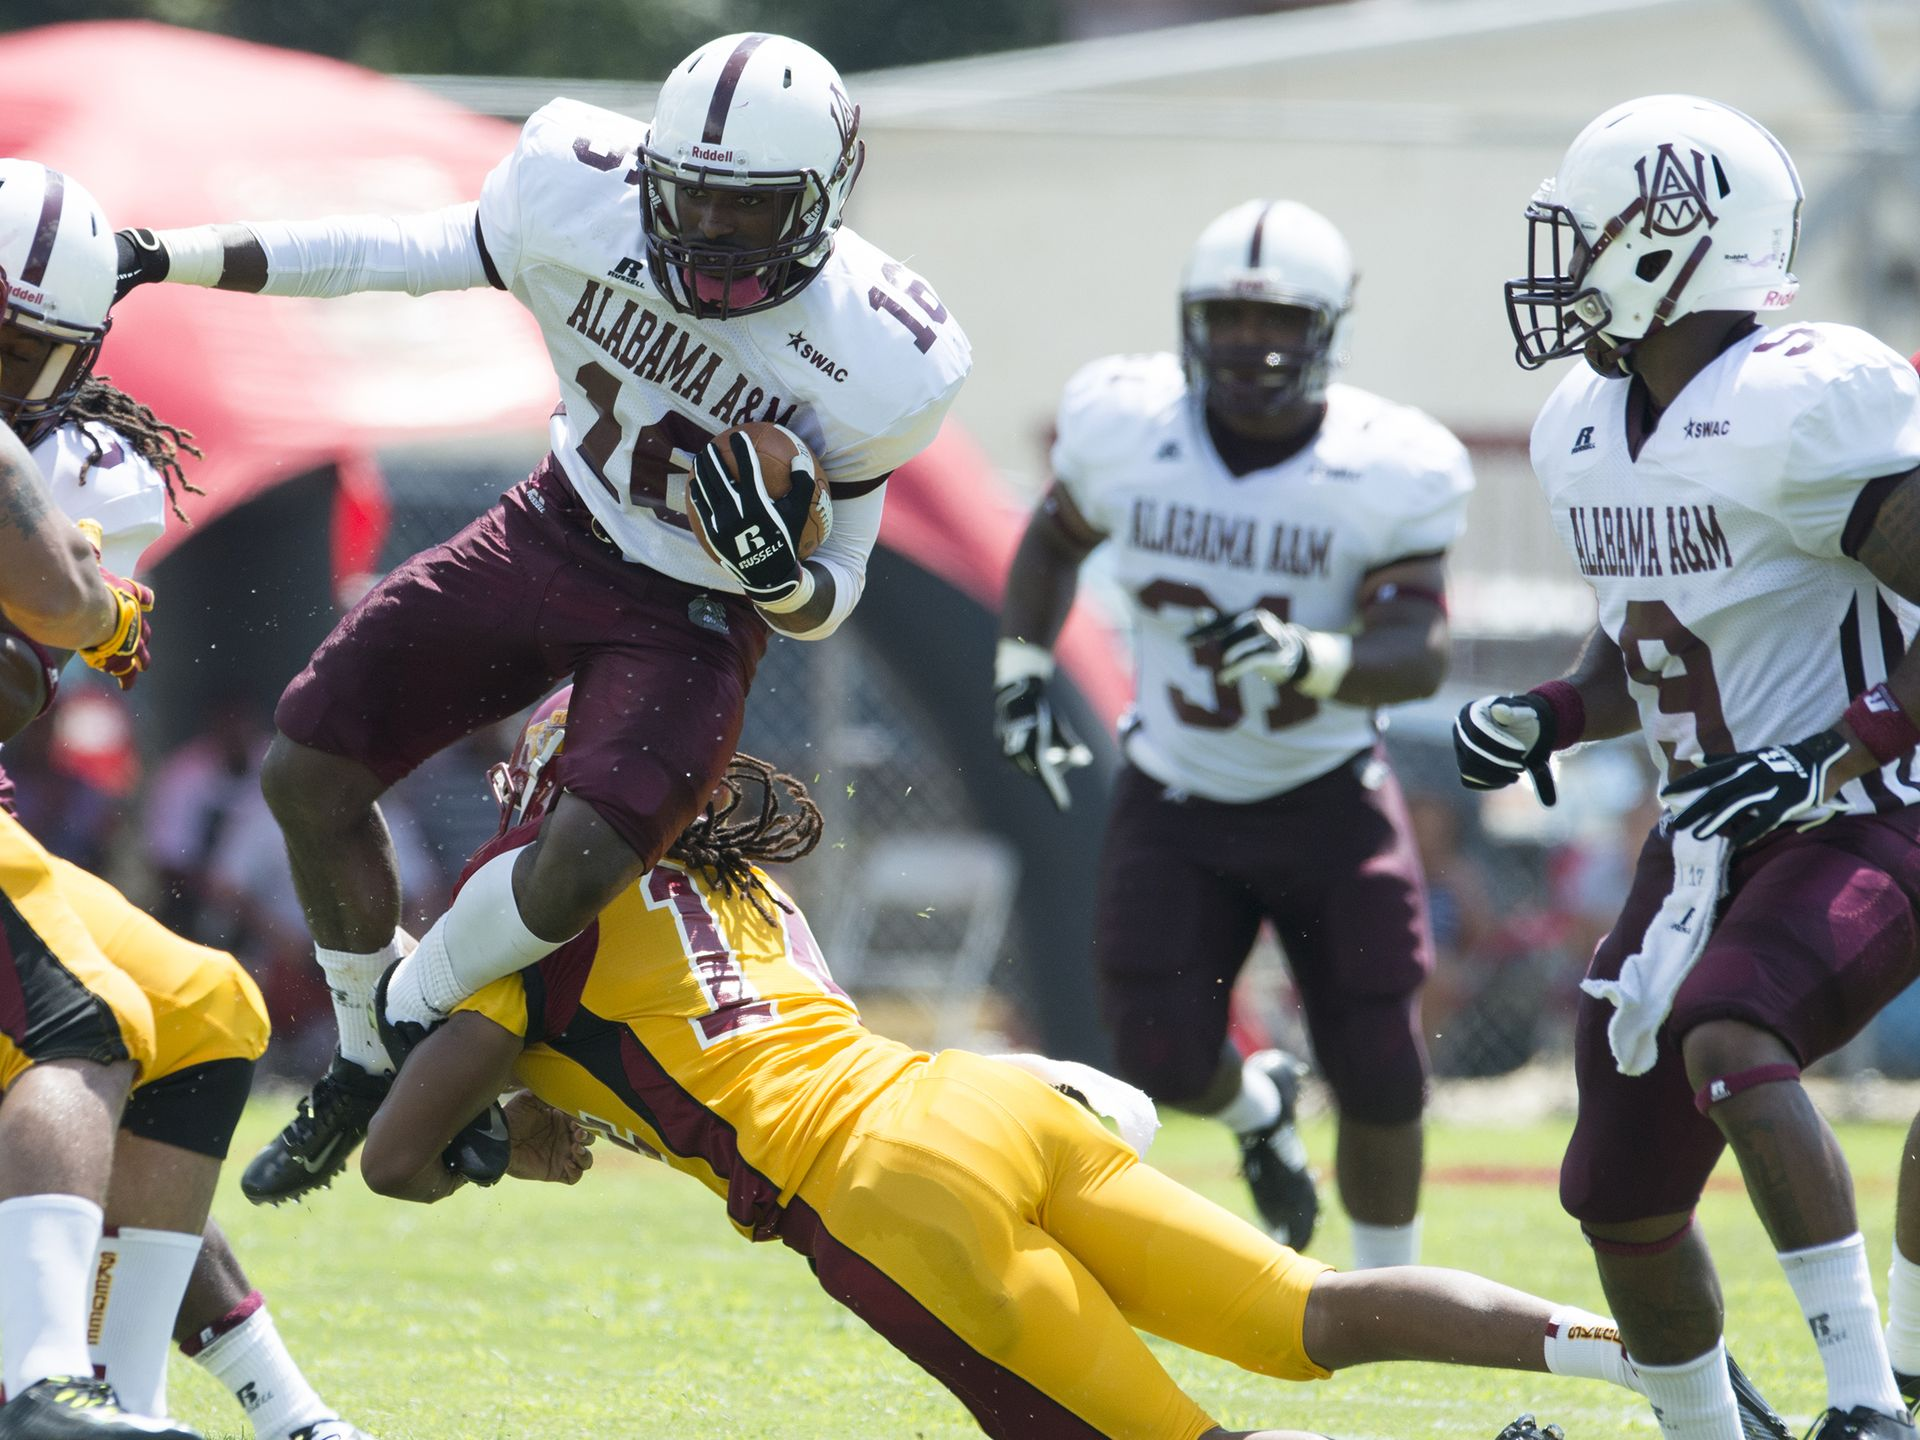 Alabama A&M Bulldogs beat Tuskegee Golden Tigers ...